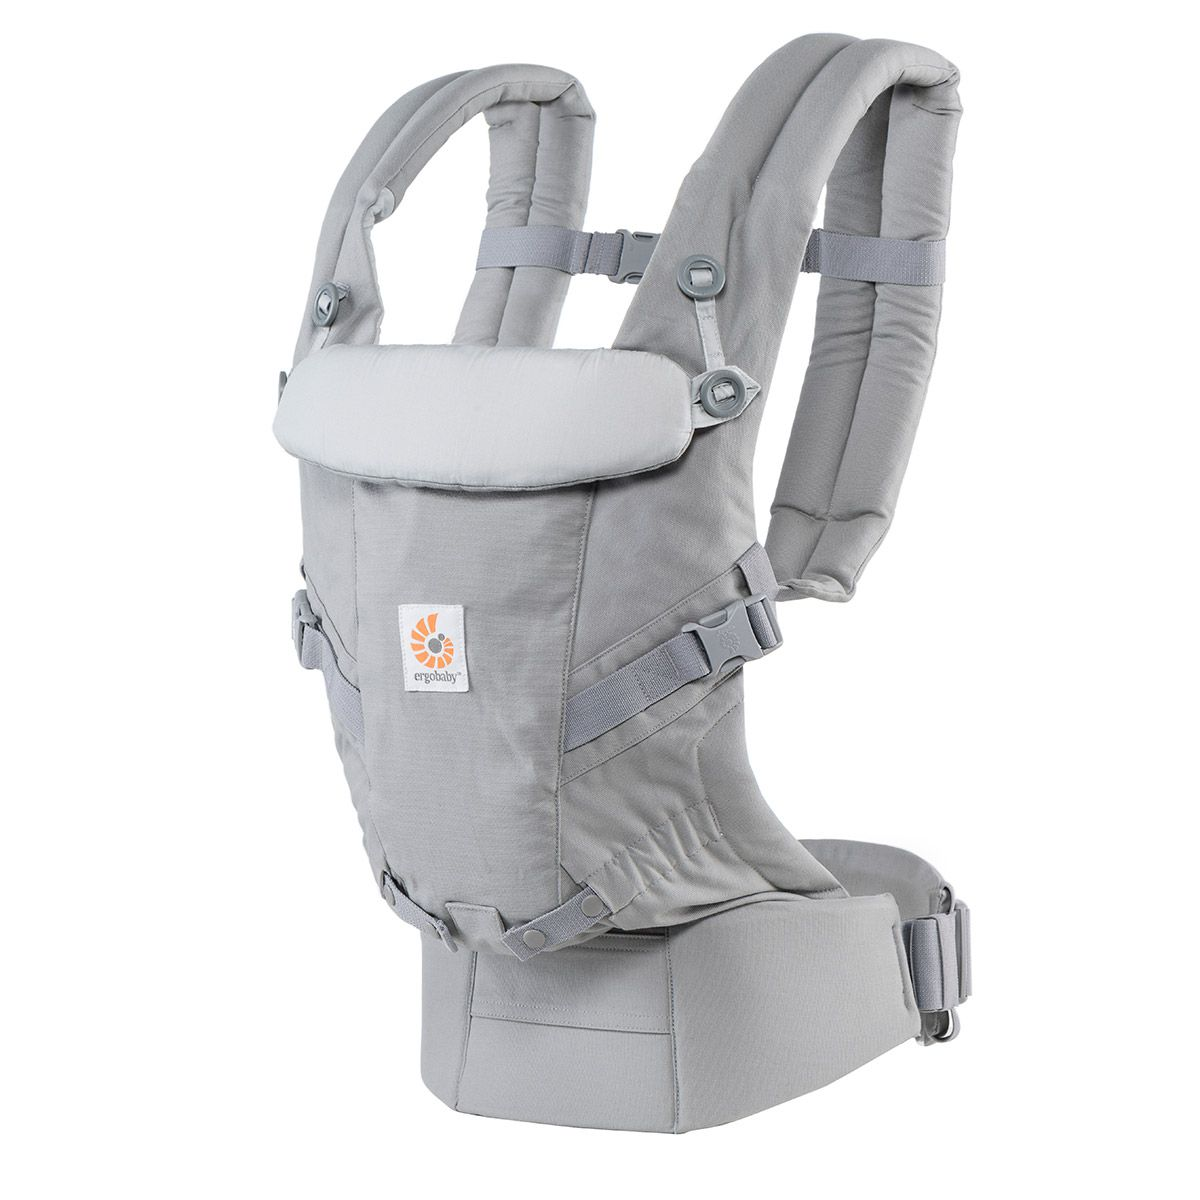 Ergo Adapt Baby Carrier In Pearl Grey Carries Newborn S